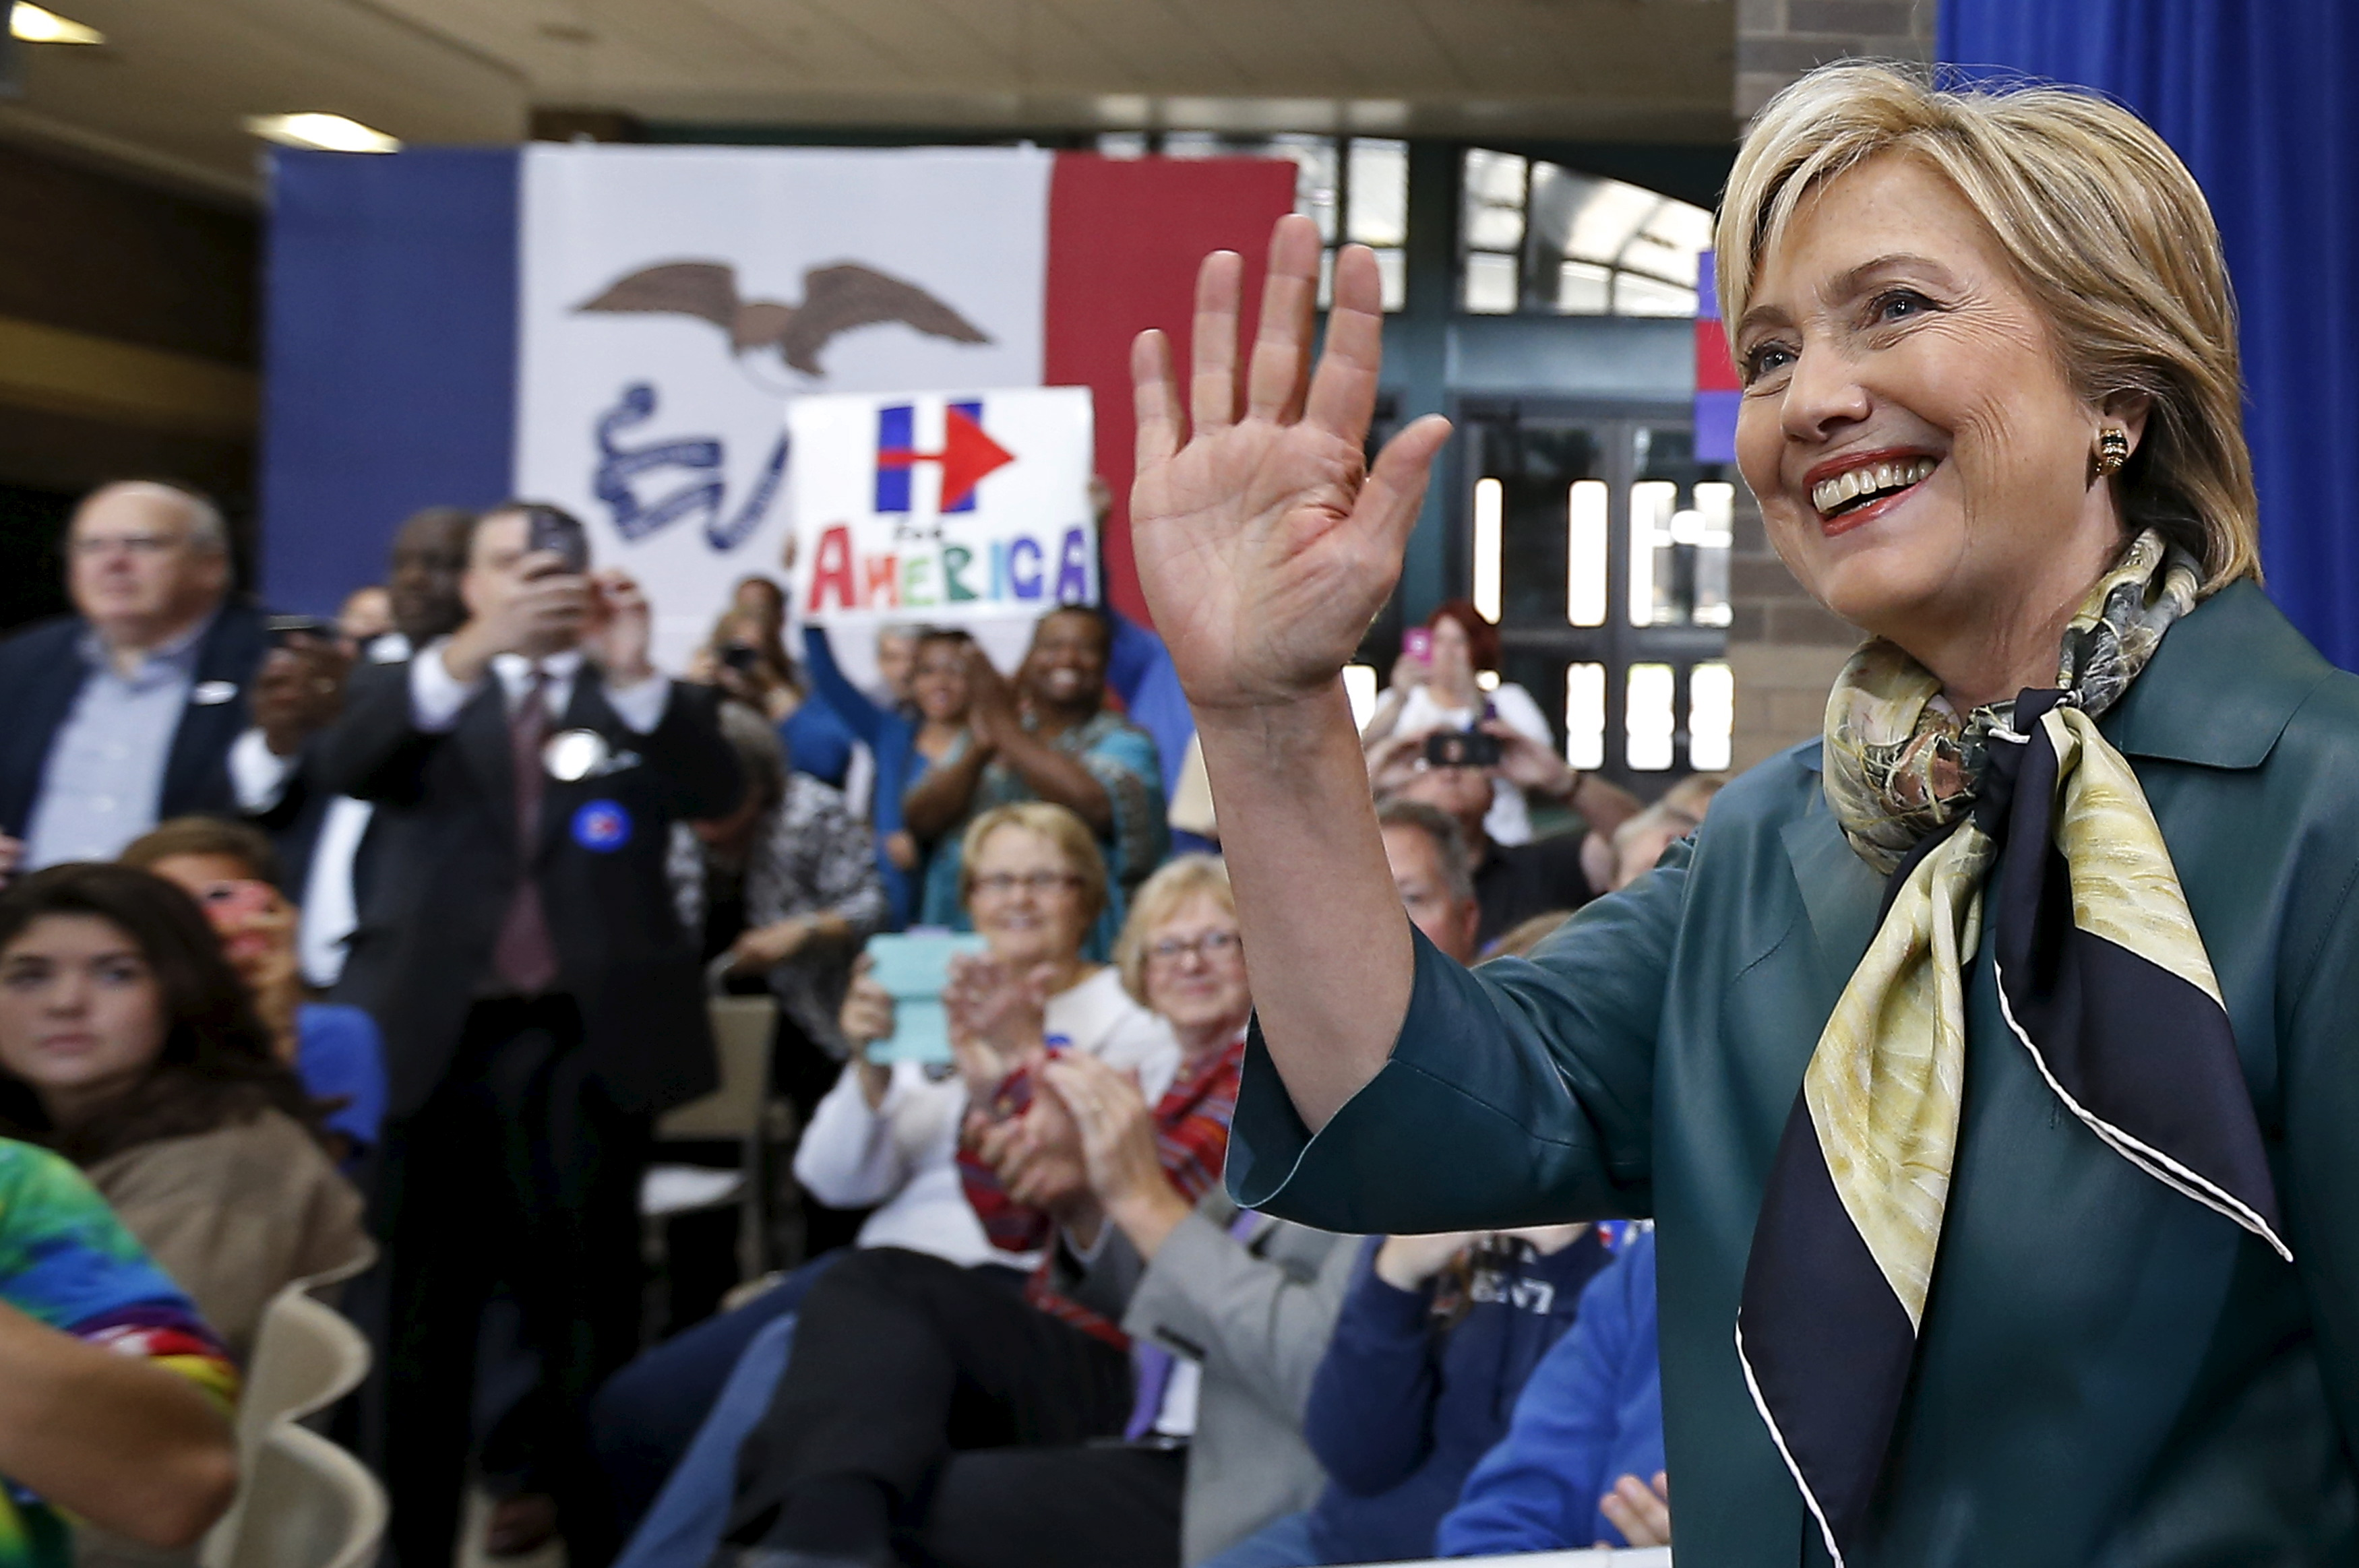 U.S. Democratic presidential candidate Hillary Clinton arrives at a campaign event in Davenport, Iowa Oct. 6, 2015